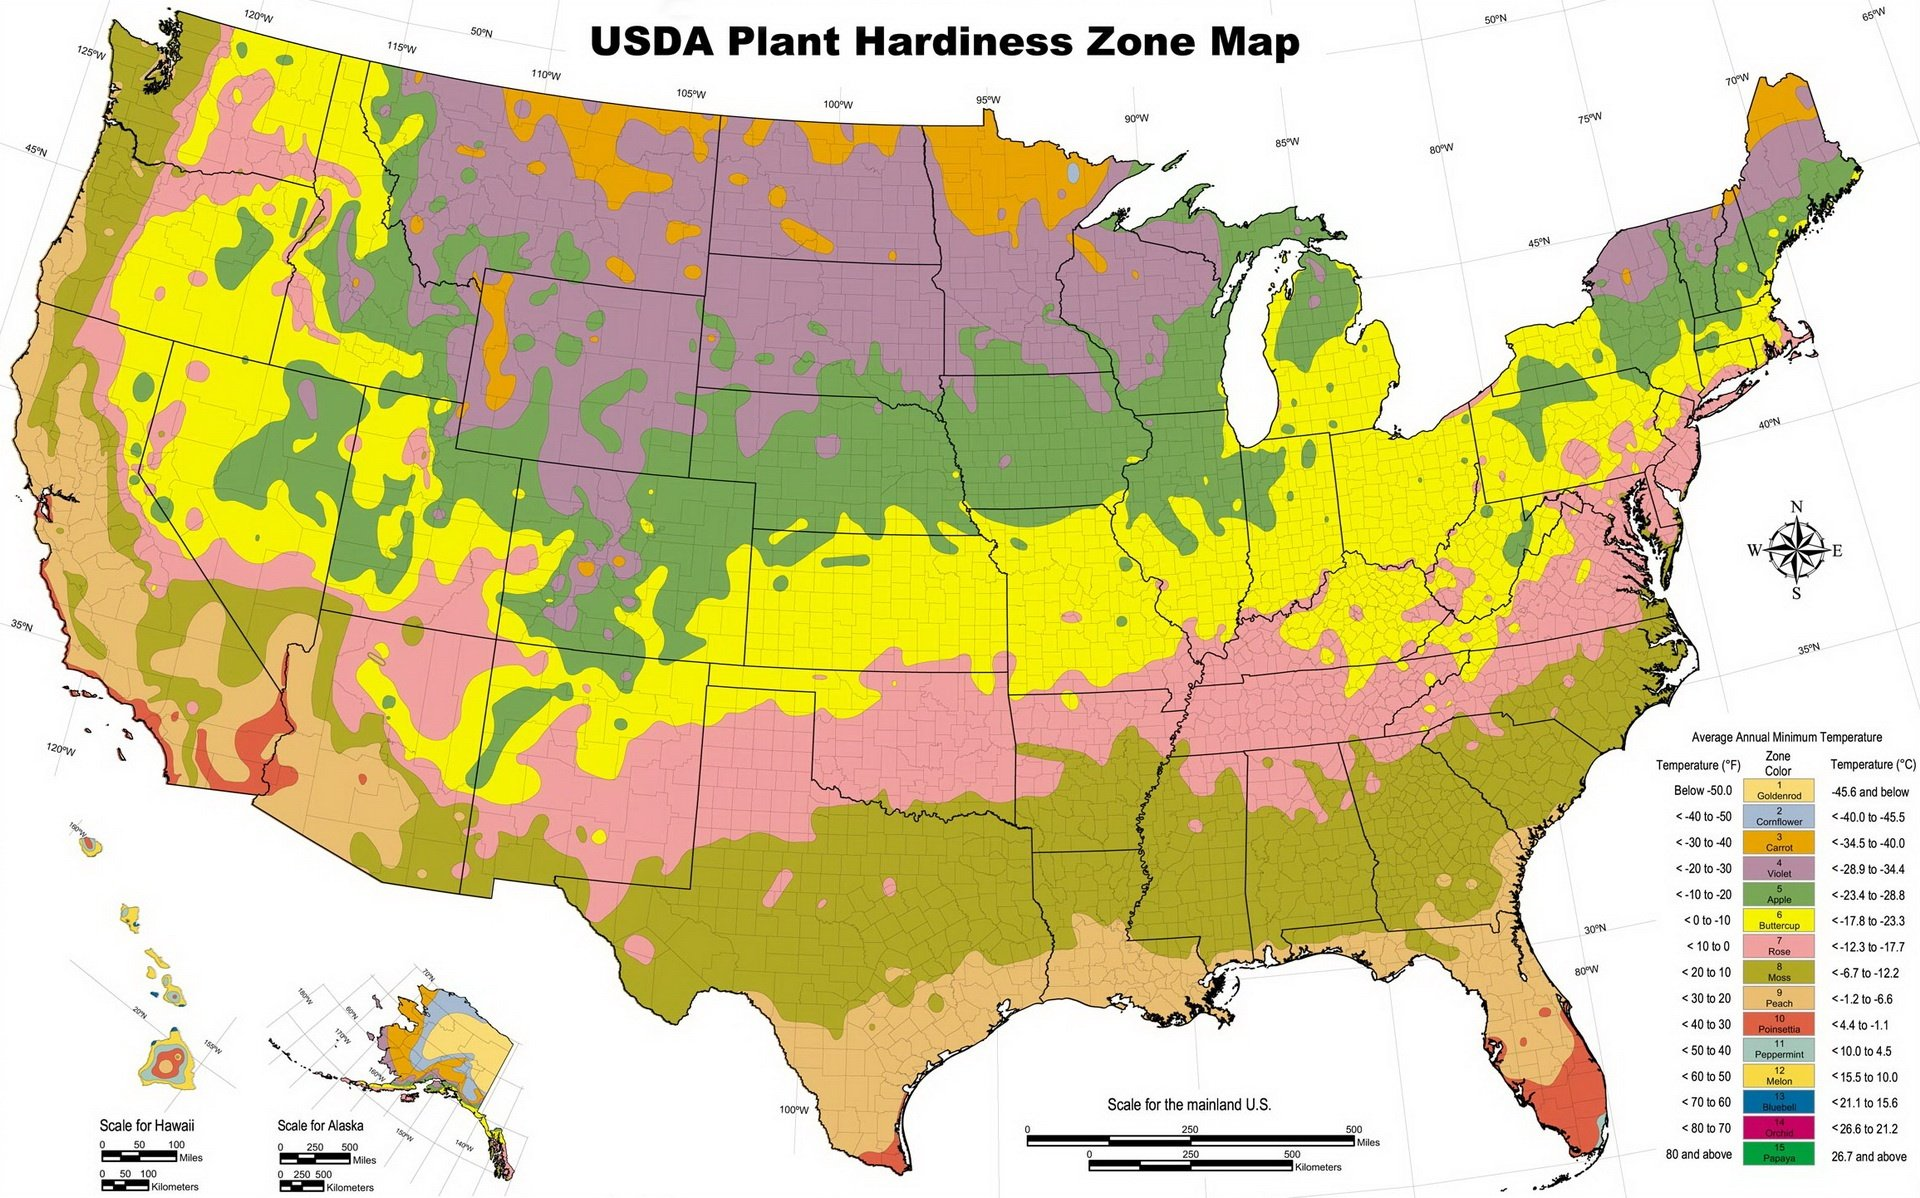 Map Downloads Usda Plant Hardiness Zone Map Usda Hardiness Zone Map Of Growing Zones In